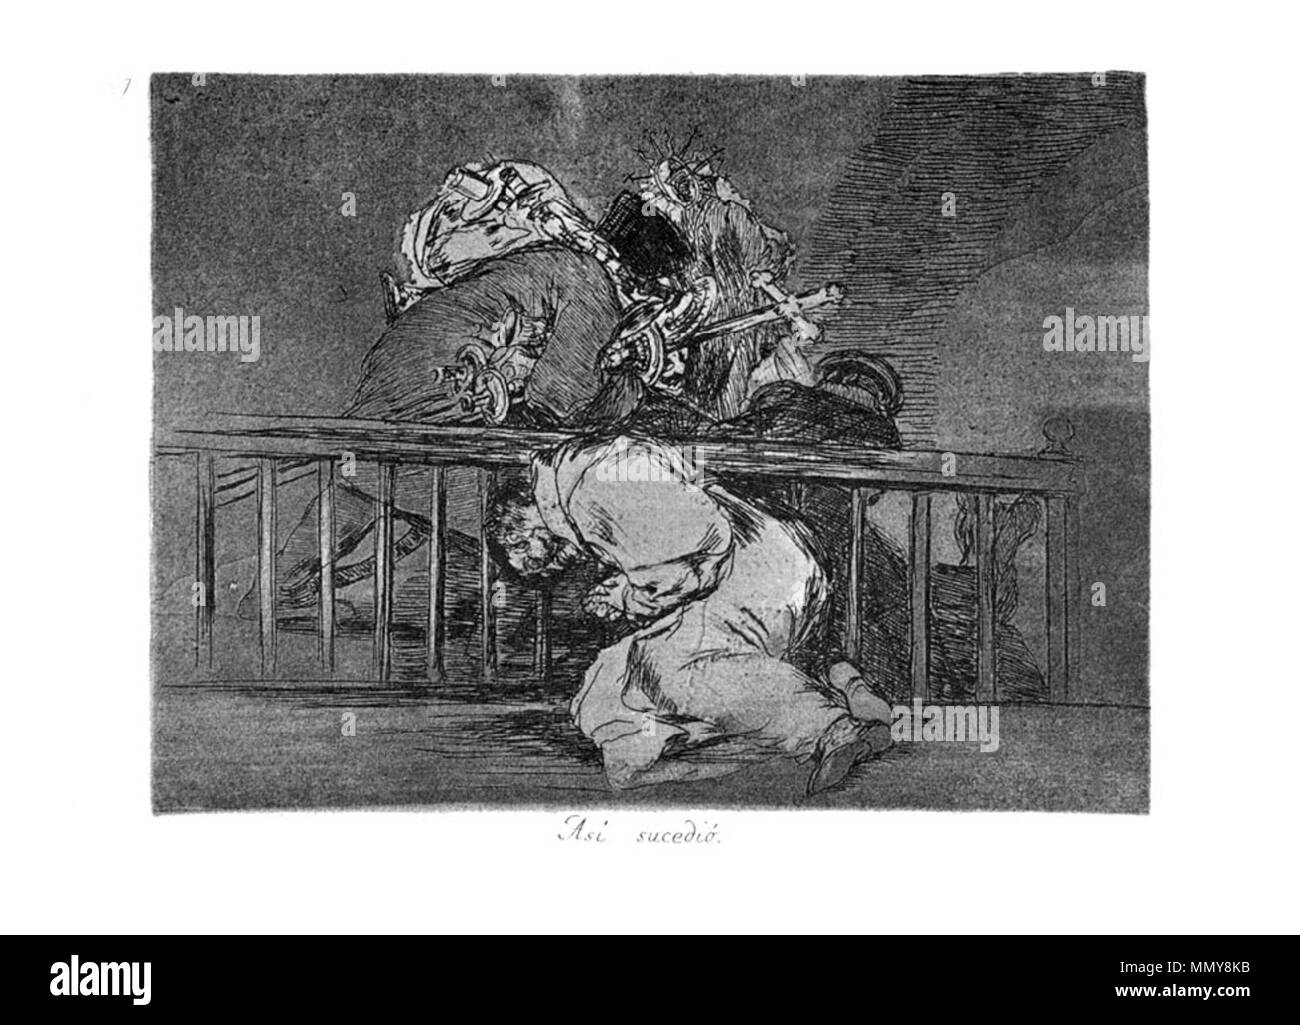 . Los Desatres de la Guerra is a set of 80 aquatint prints created by Francisco Goya in the 1810s. Plate 47: Asi sucedió. (This is how it happened. )  . 1810s.   Francisco Goya (1746–1828)   Alternative names Francisco Goya Lucientes, Francisco de Goya y Lucientes, Francisco José Goya Lucientes  Description Spanish painter, printmaker, lithographer, engraver and etcher  Date of birth/death 30 March 1746 16 April 1828  Location of birth/death Fuendetodos Bordeaux  Work location Madrid, Zaragoza, Bordeaux  Authority control  : Q5432 VIAF:?54343141 ISNI:?0000 0001 2280 1608 ULAN:?500118936 LC - Stock Image